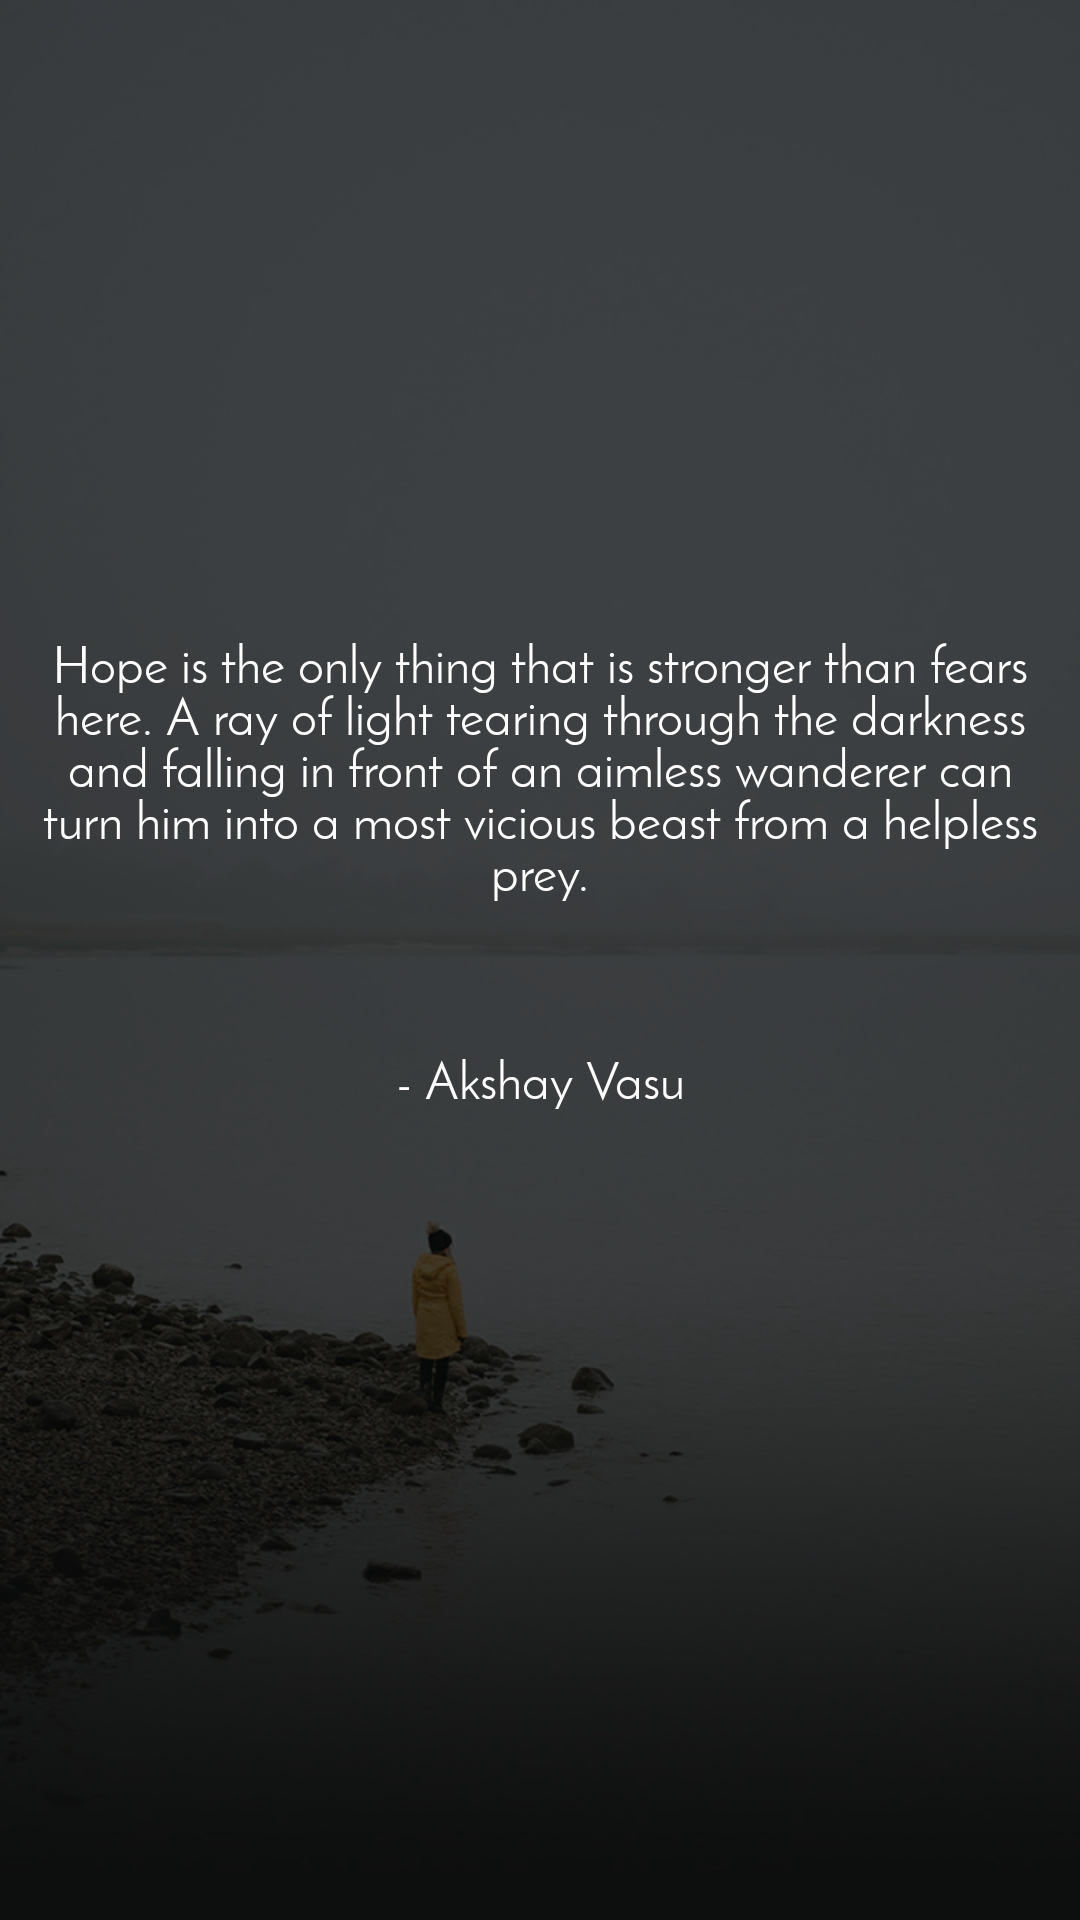 Hope is the only thing that is stronger than fears here. A ray of light tearing through the darkness and falling in front of an aimless wanderer can turn him into a most vicious beast from a helpless prey.    - Akshay Vasu